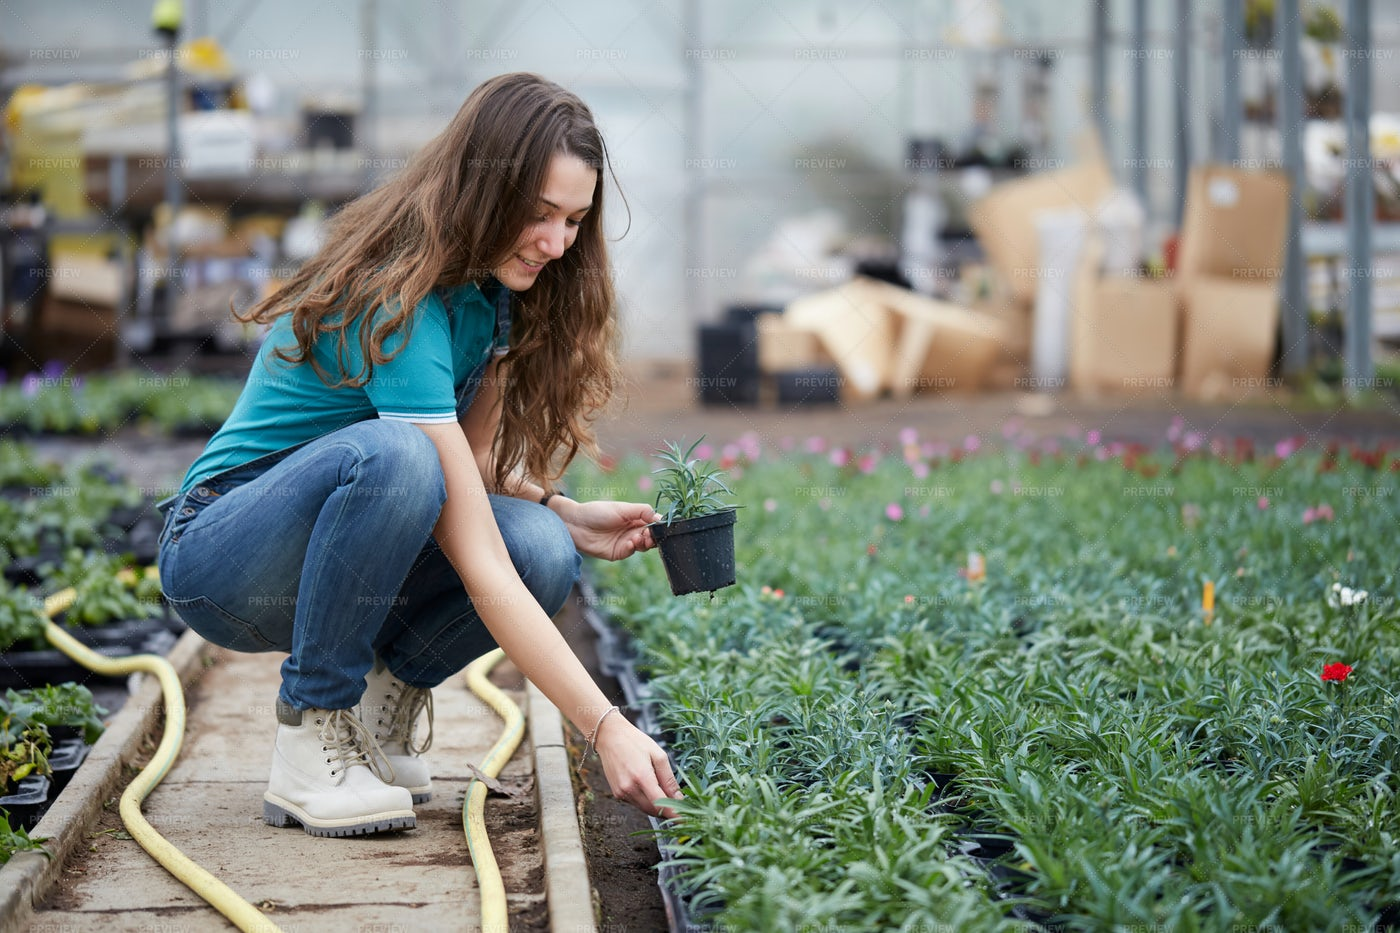 Woman Working In A Plant Nursery: Stock Photos